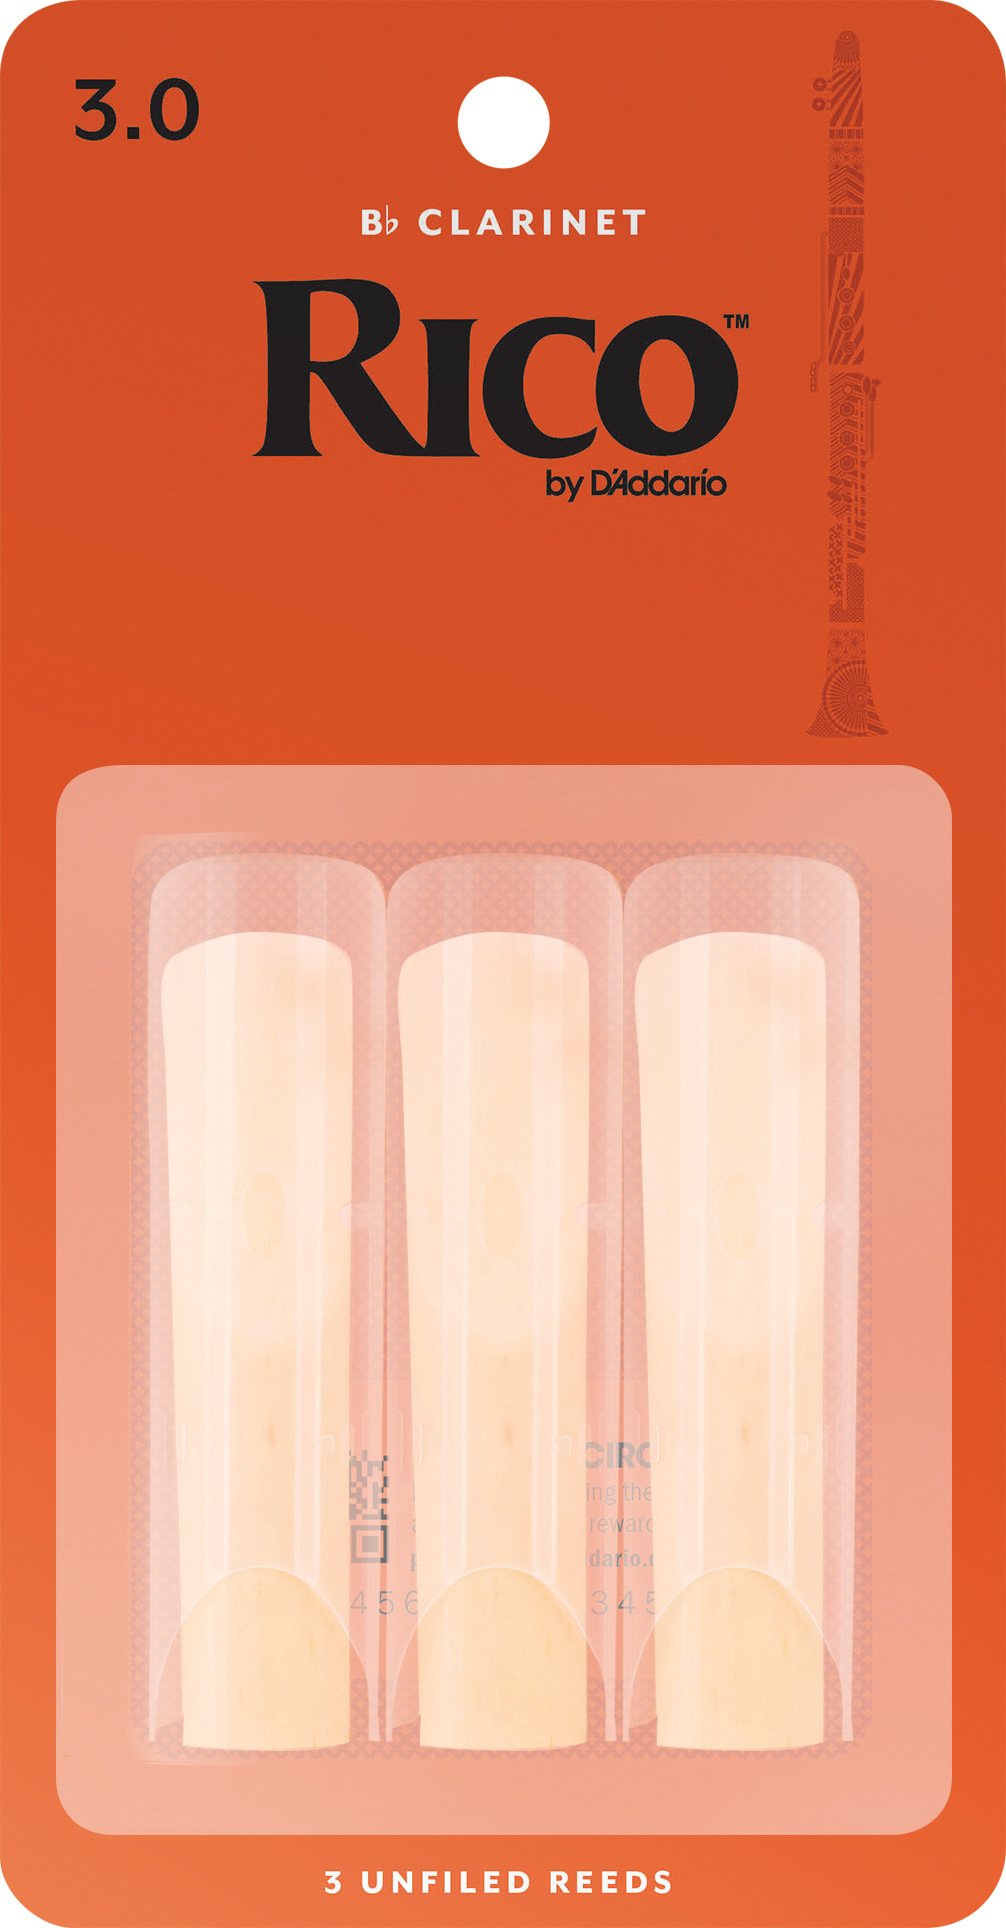 Rico by D'Addario Bb Clarinet Reeds 03-pack, Strength 3